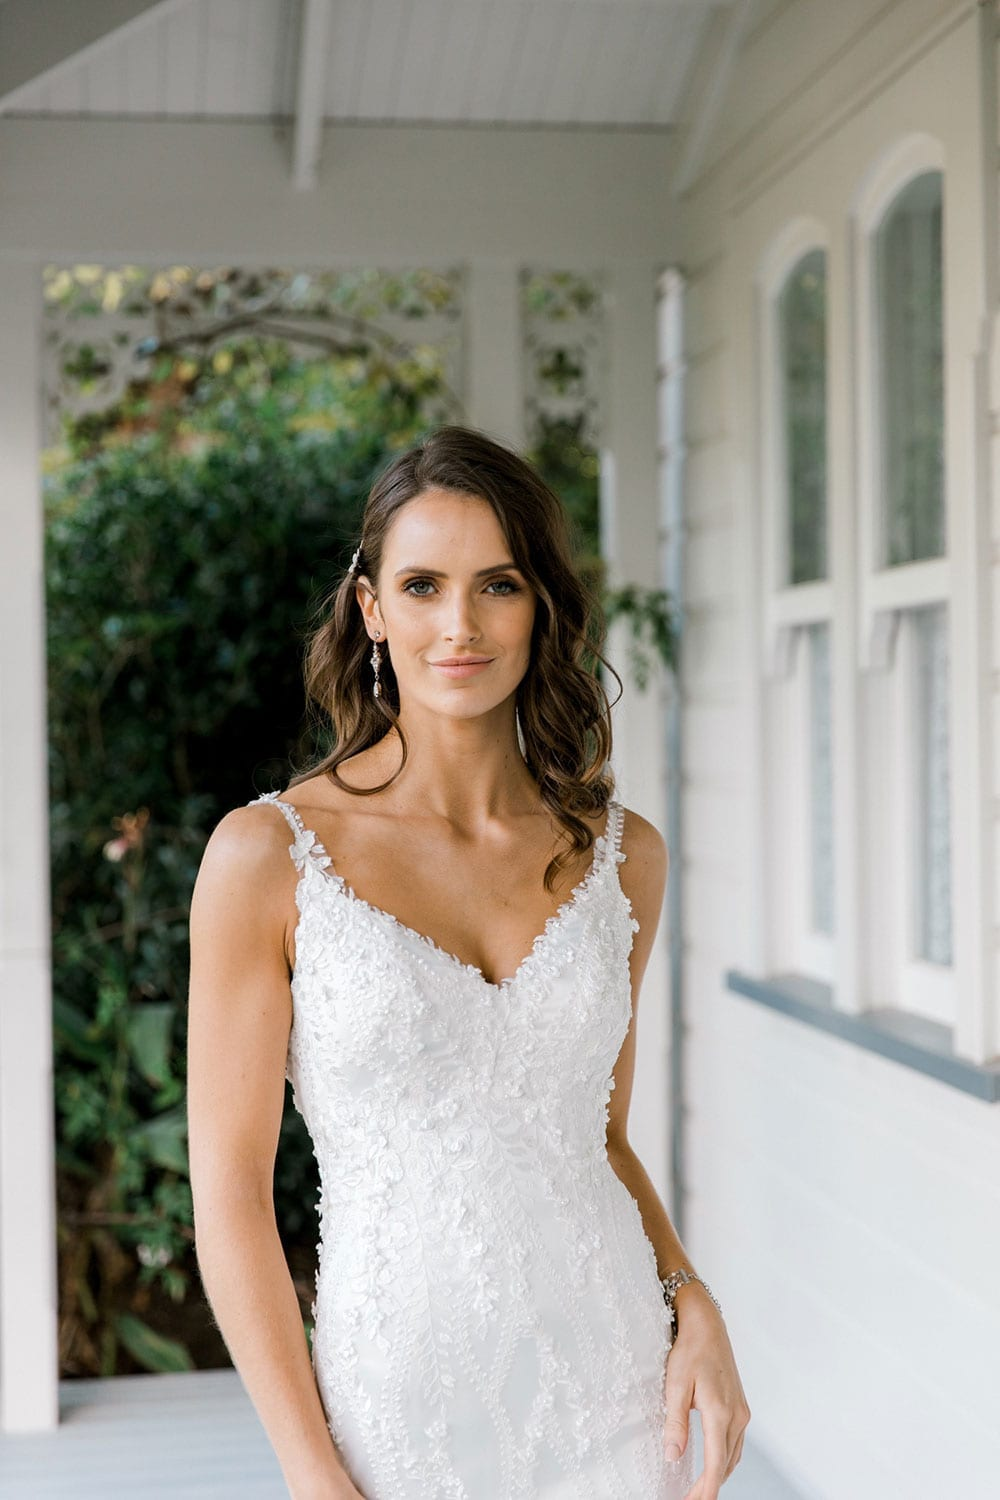 Model wearing Vinka Design Camille Wedding Dress, a Timeless Fitted Wedding Gown on the veranda of a beautiful New Zealand home